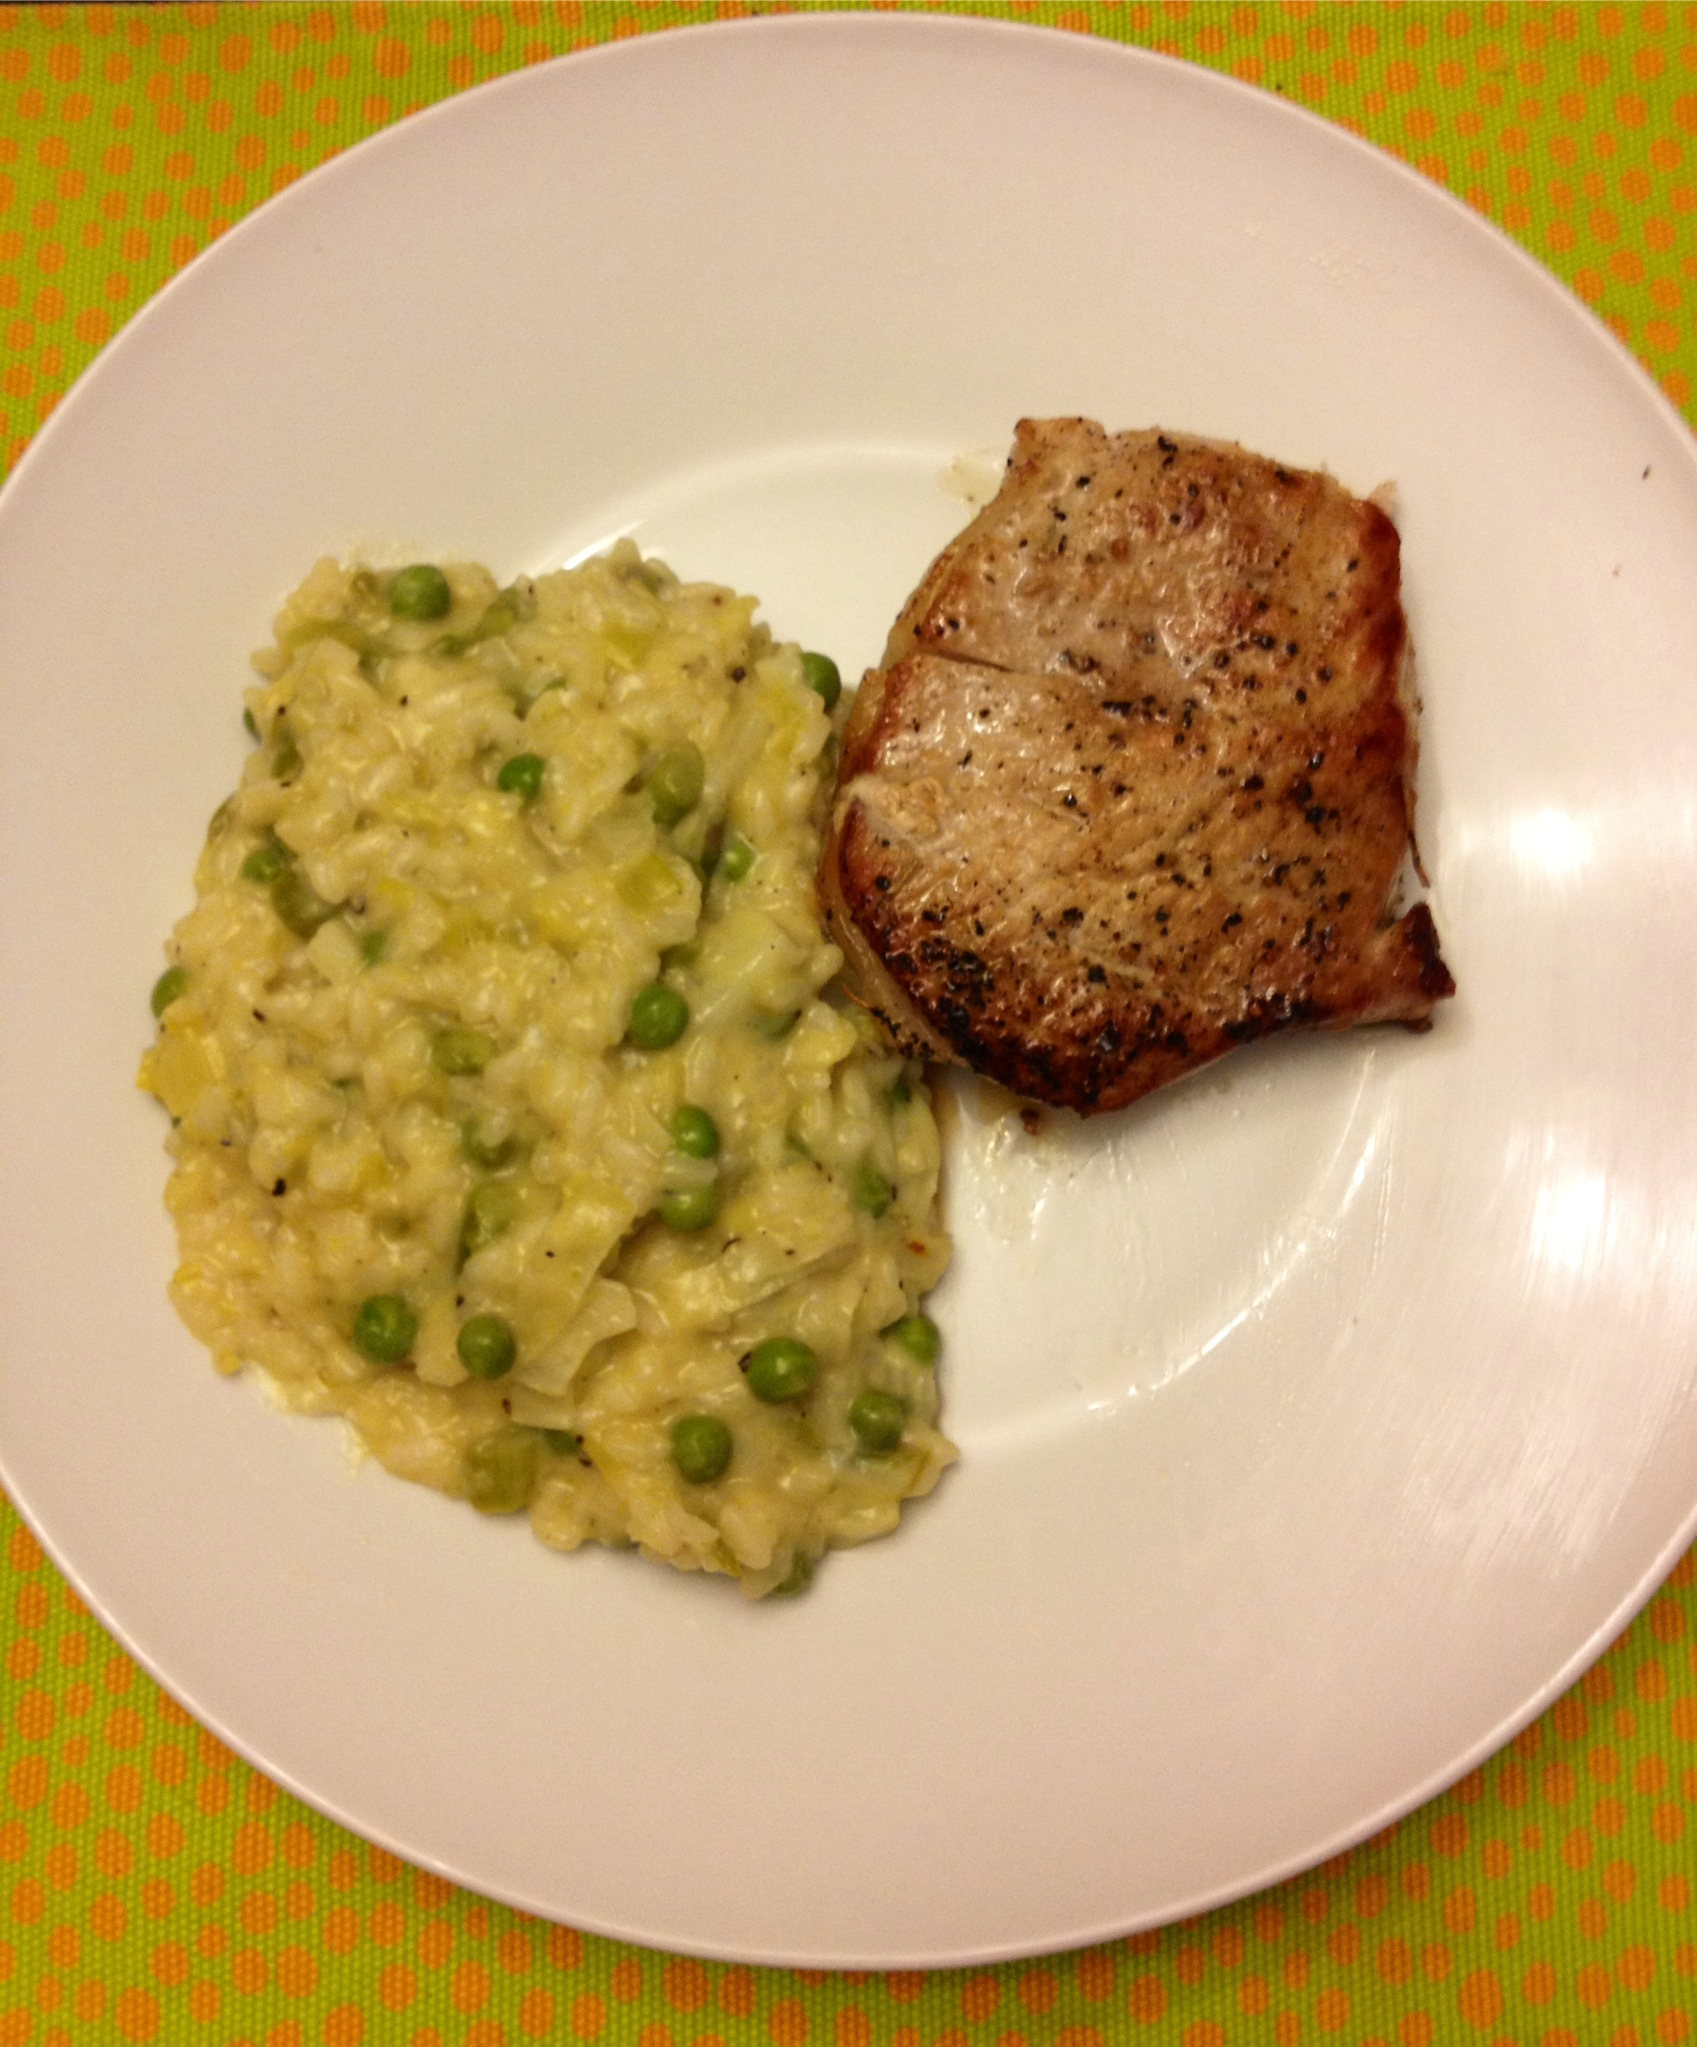 Lovely Dinner Spring Green Risotto Pork Chops A